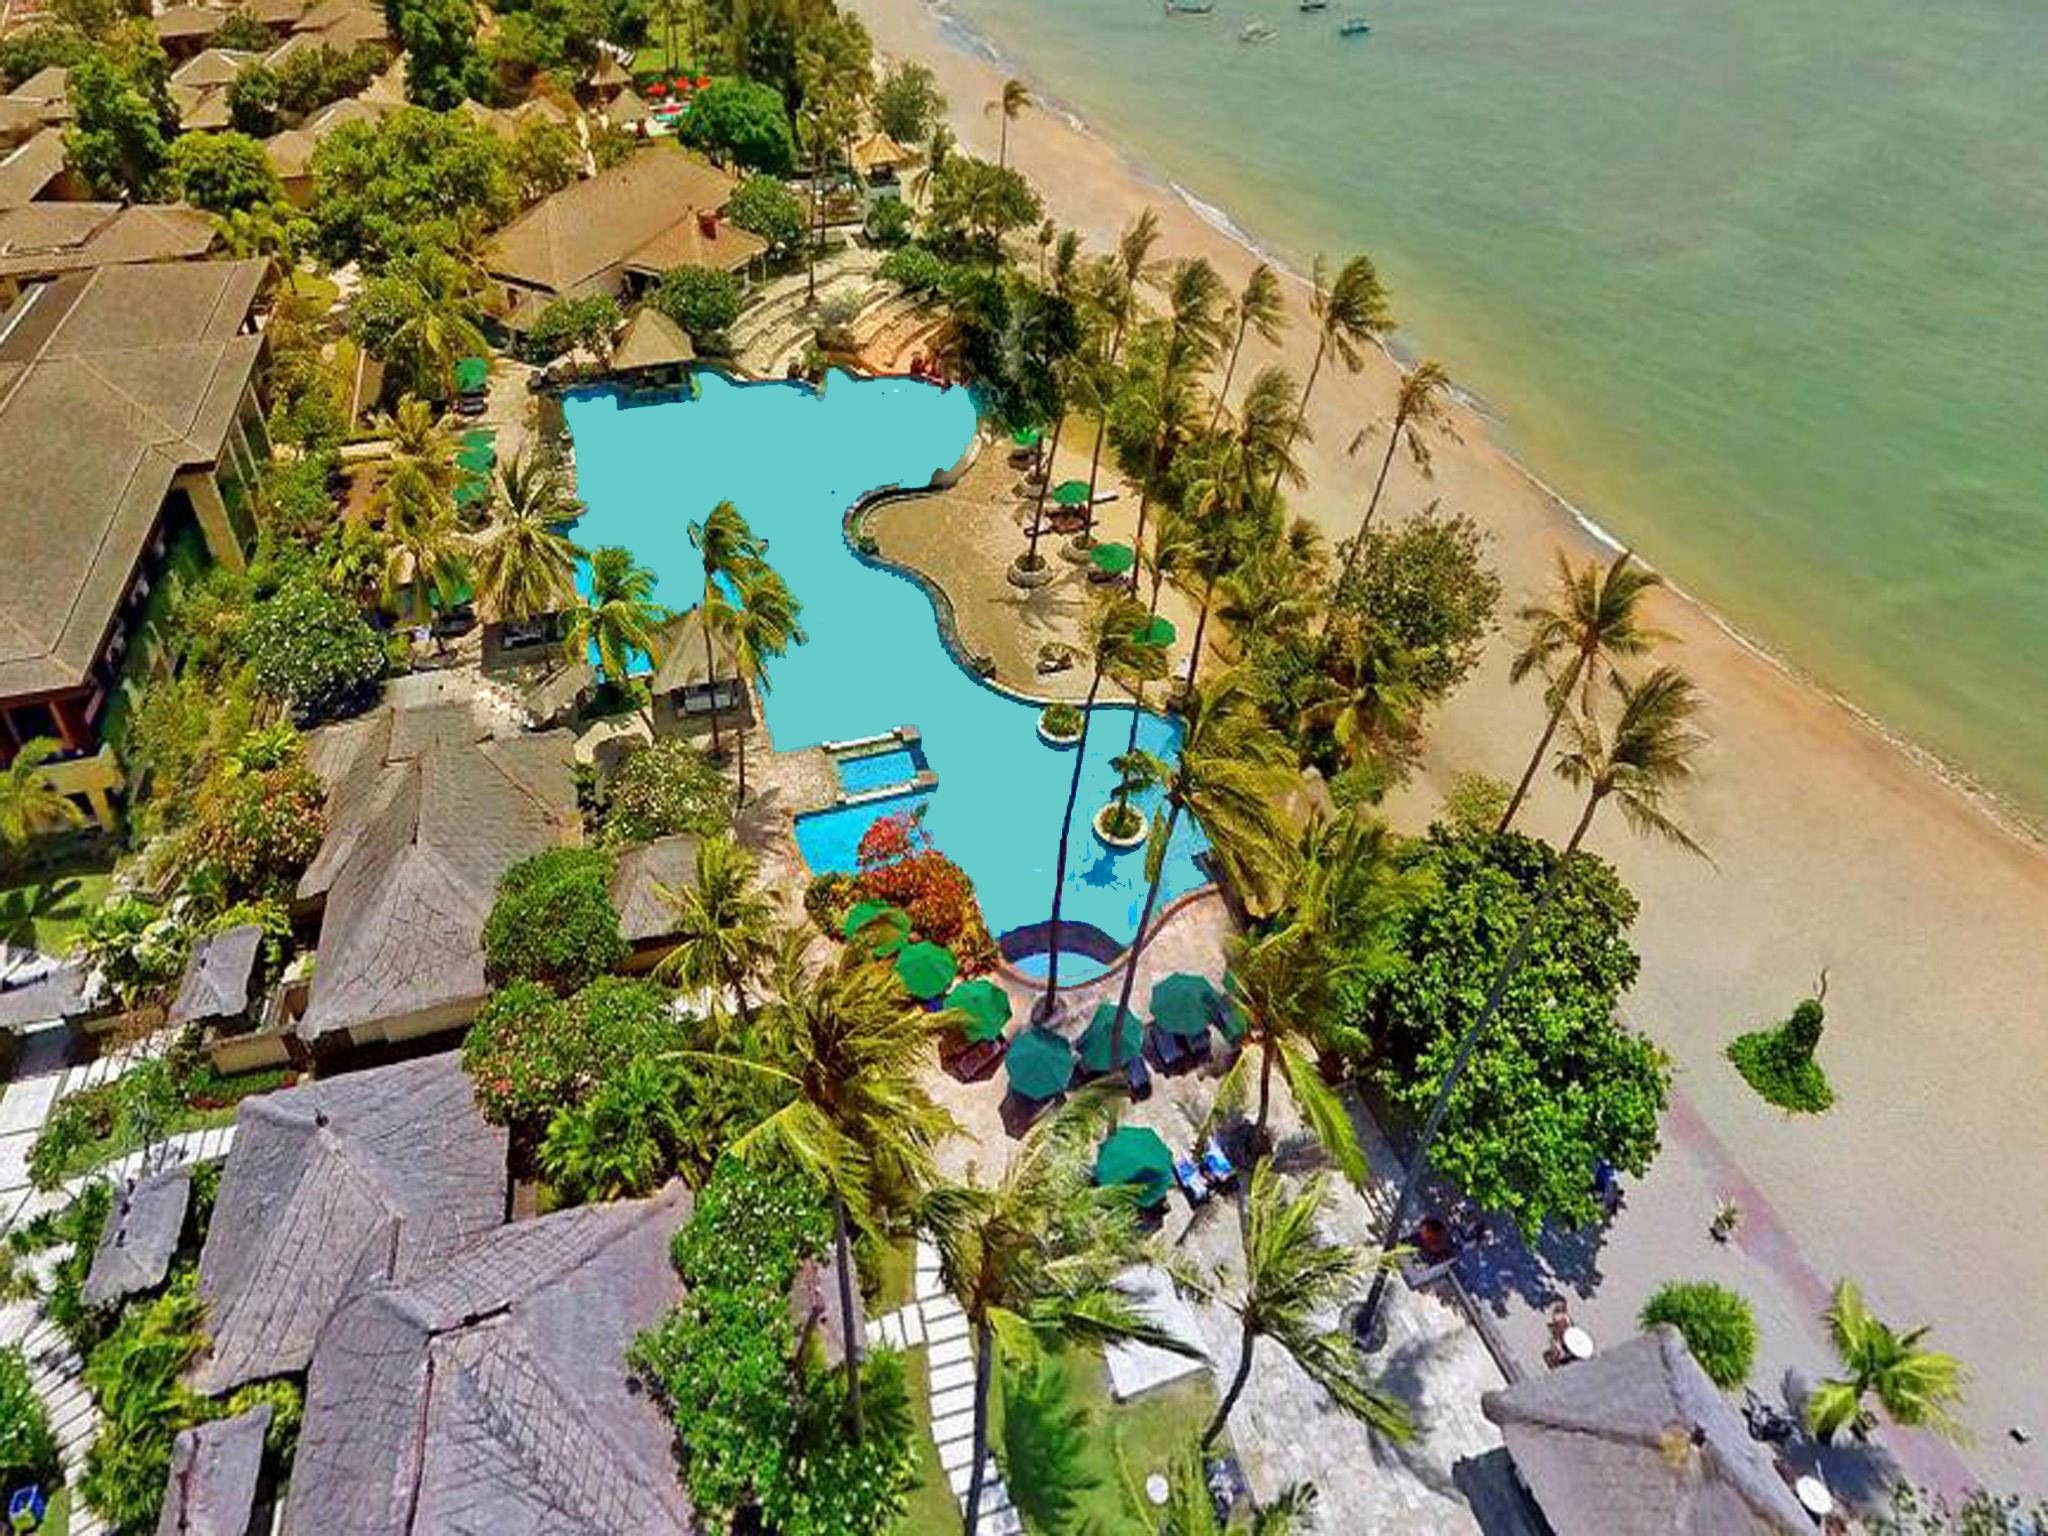 The Patra Bali Resort & Villas